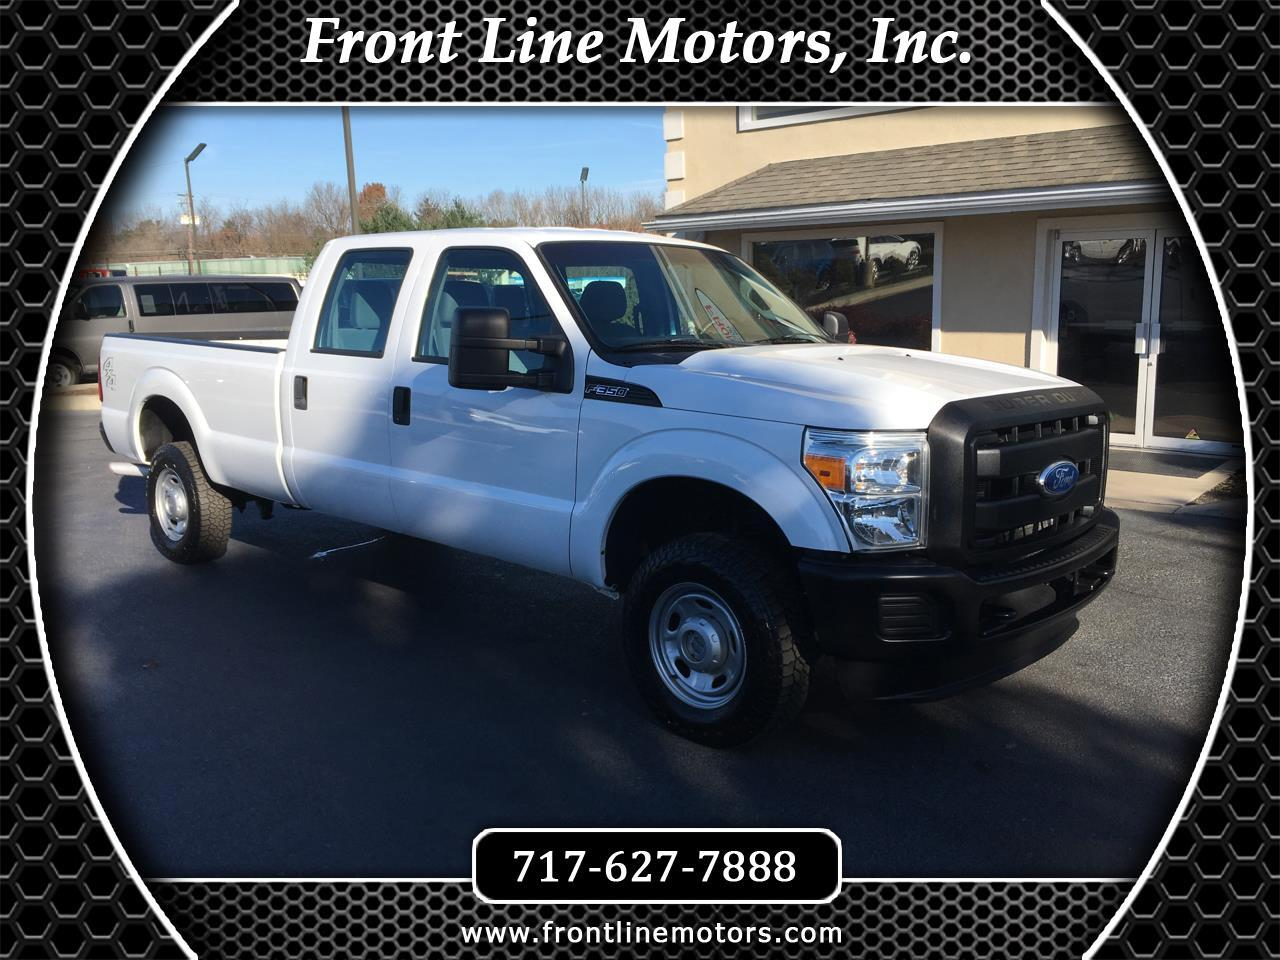 2011 Ford Super Duty F-350 SRW 4WD Crew Cab 172